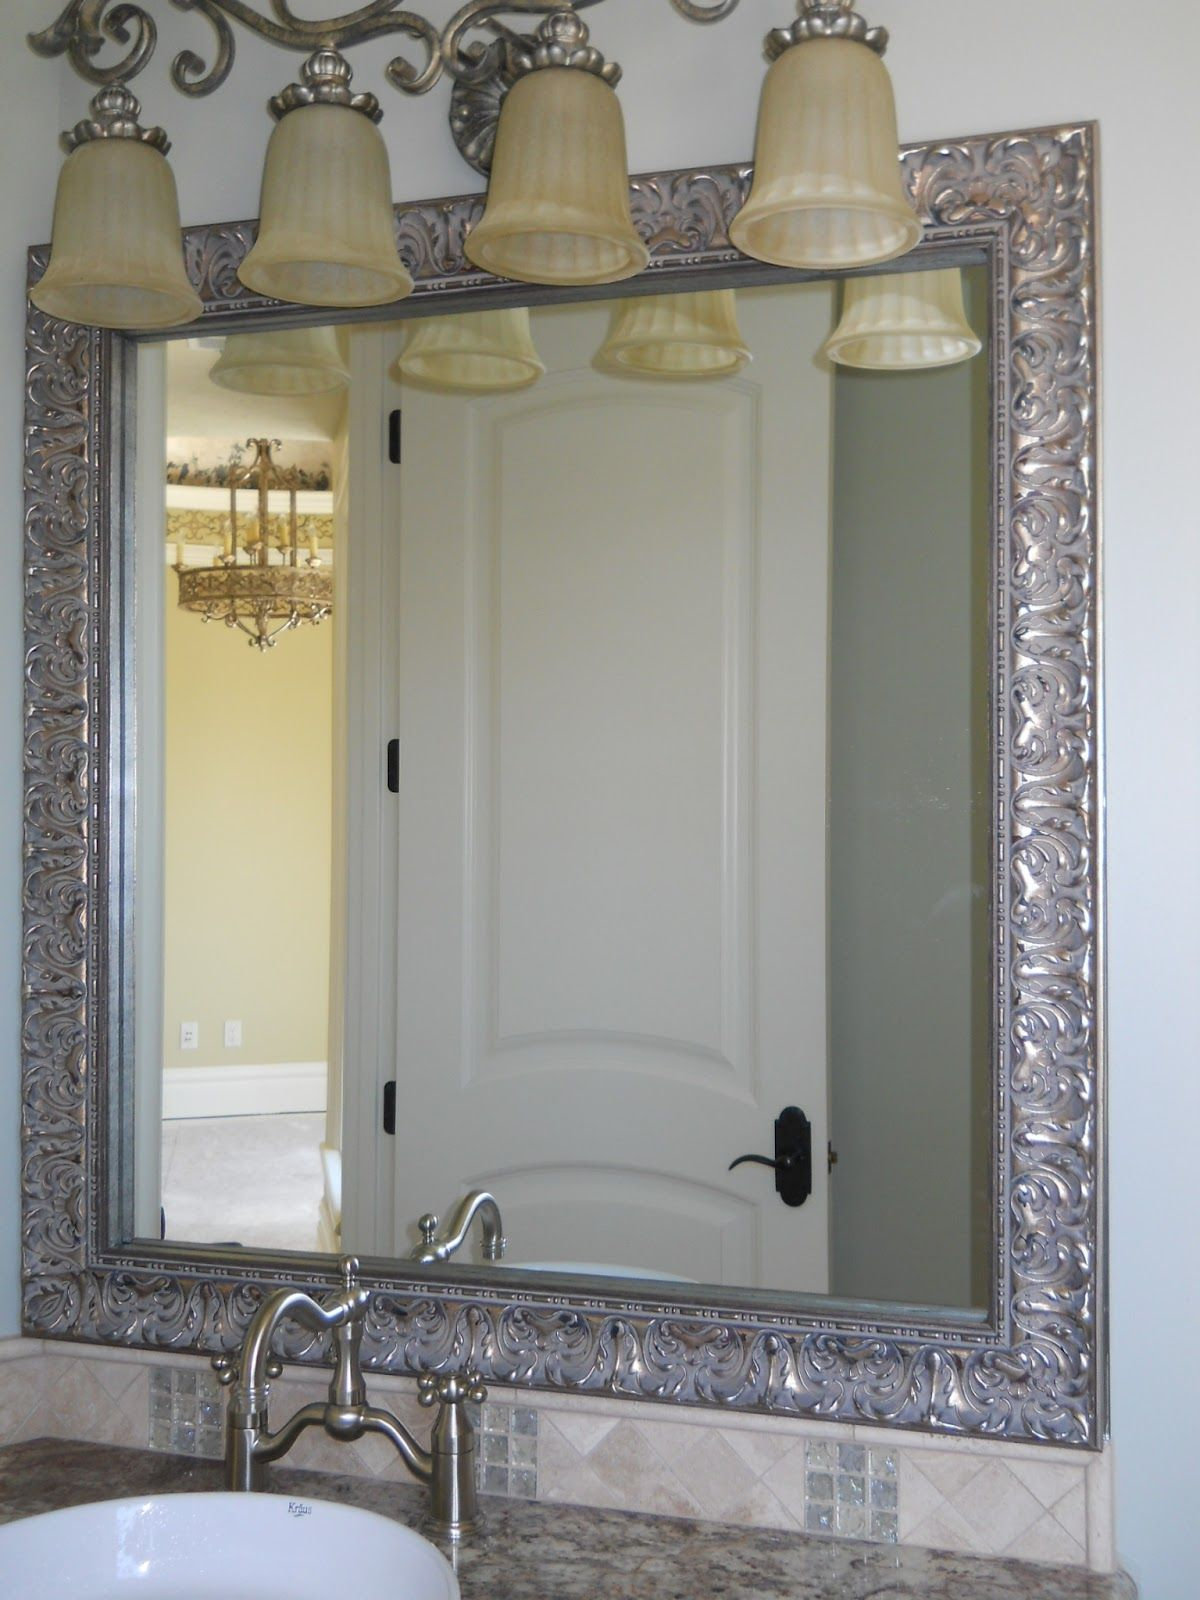 Genial Mirror Frame Kit : Reflected Design, Custom Mirror Frame Kits   Bathroom  Mirror Kits